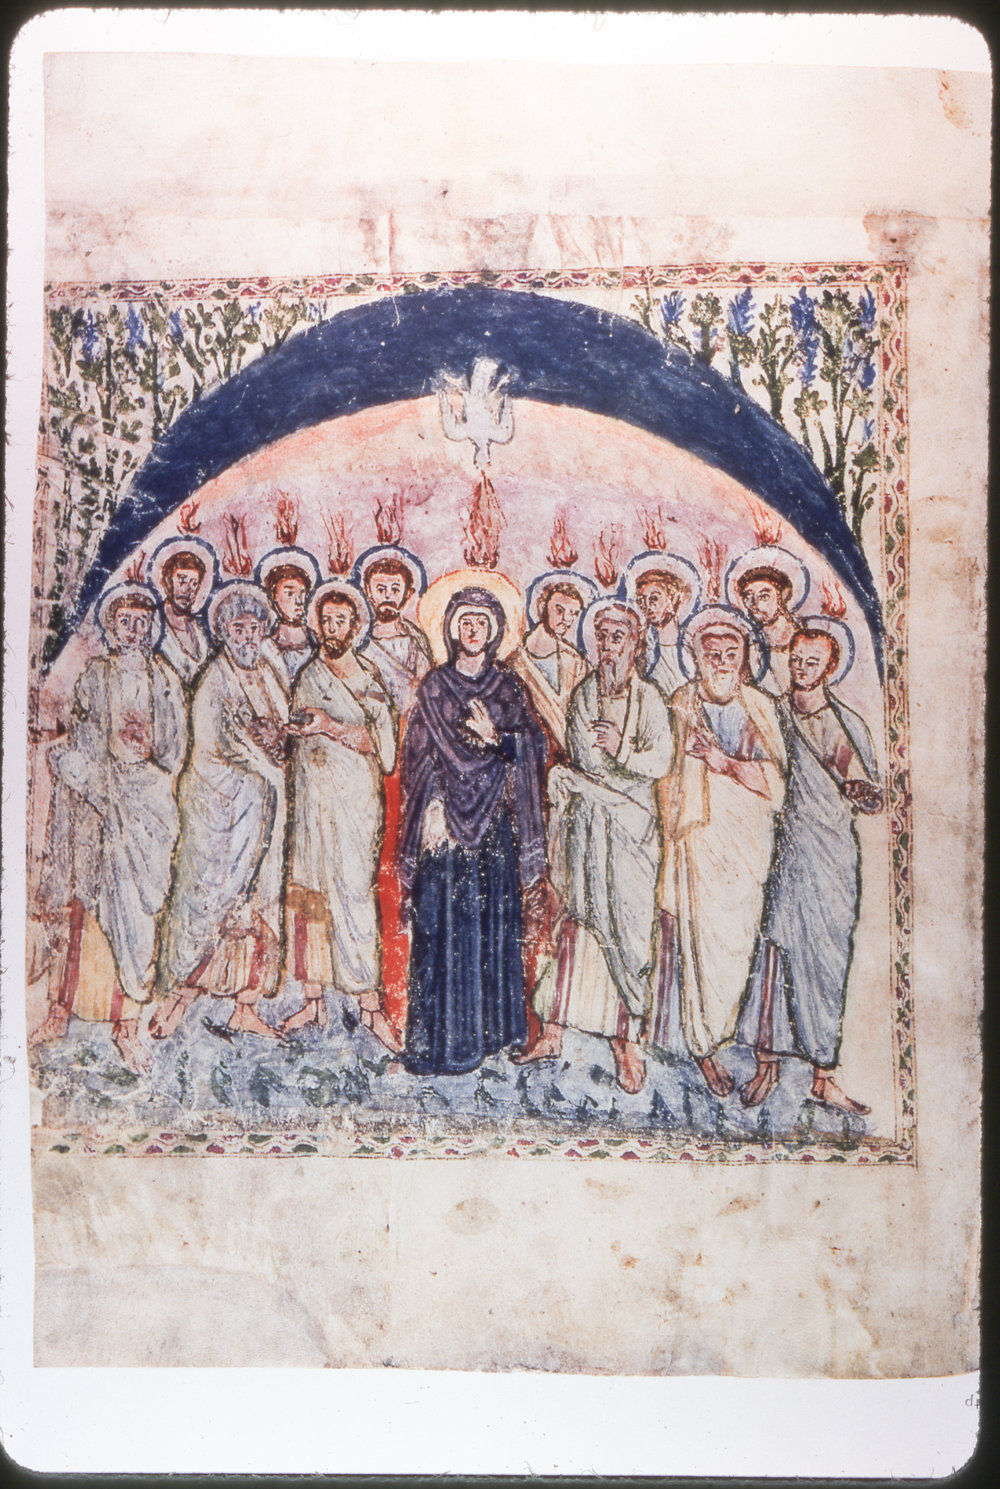 Mary and the Disciples at Pentecost | Rabbula Gospels, fol. 14b | Image credit:  Everett Ferguson photo collection